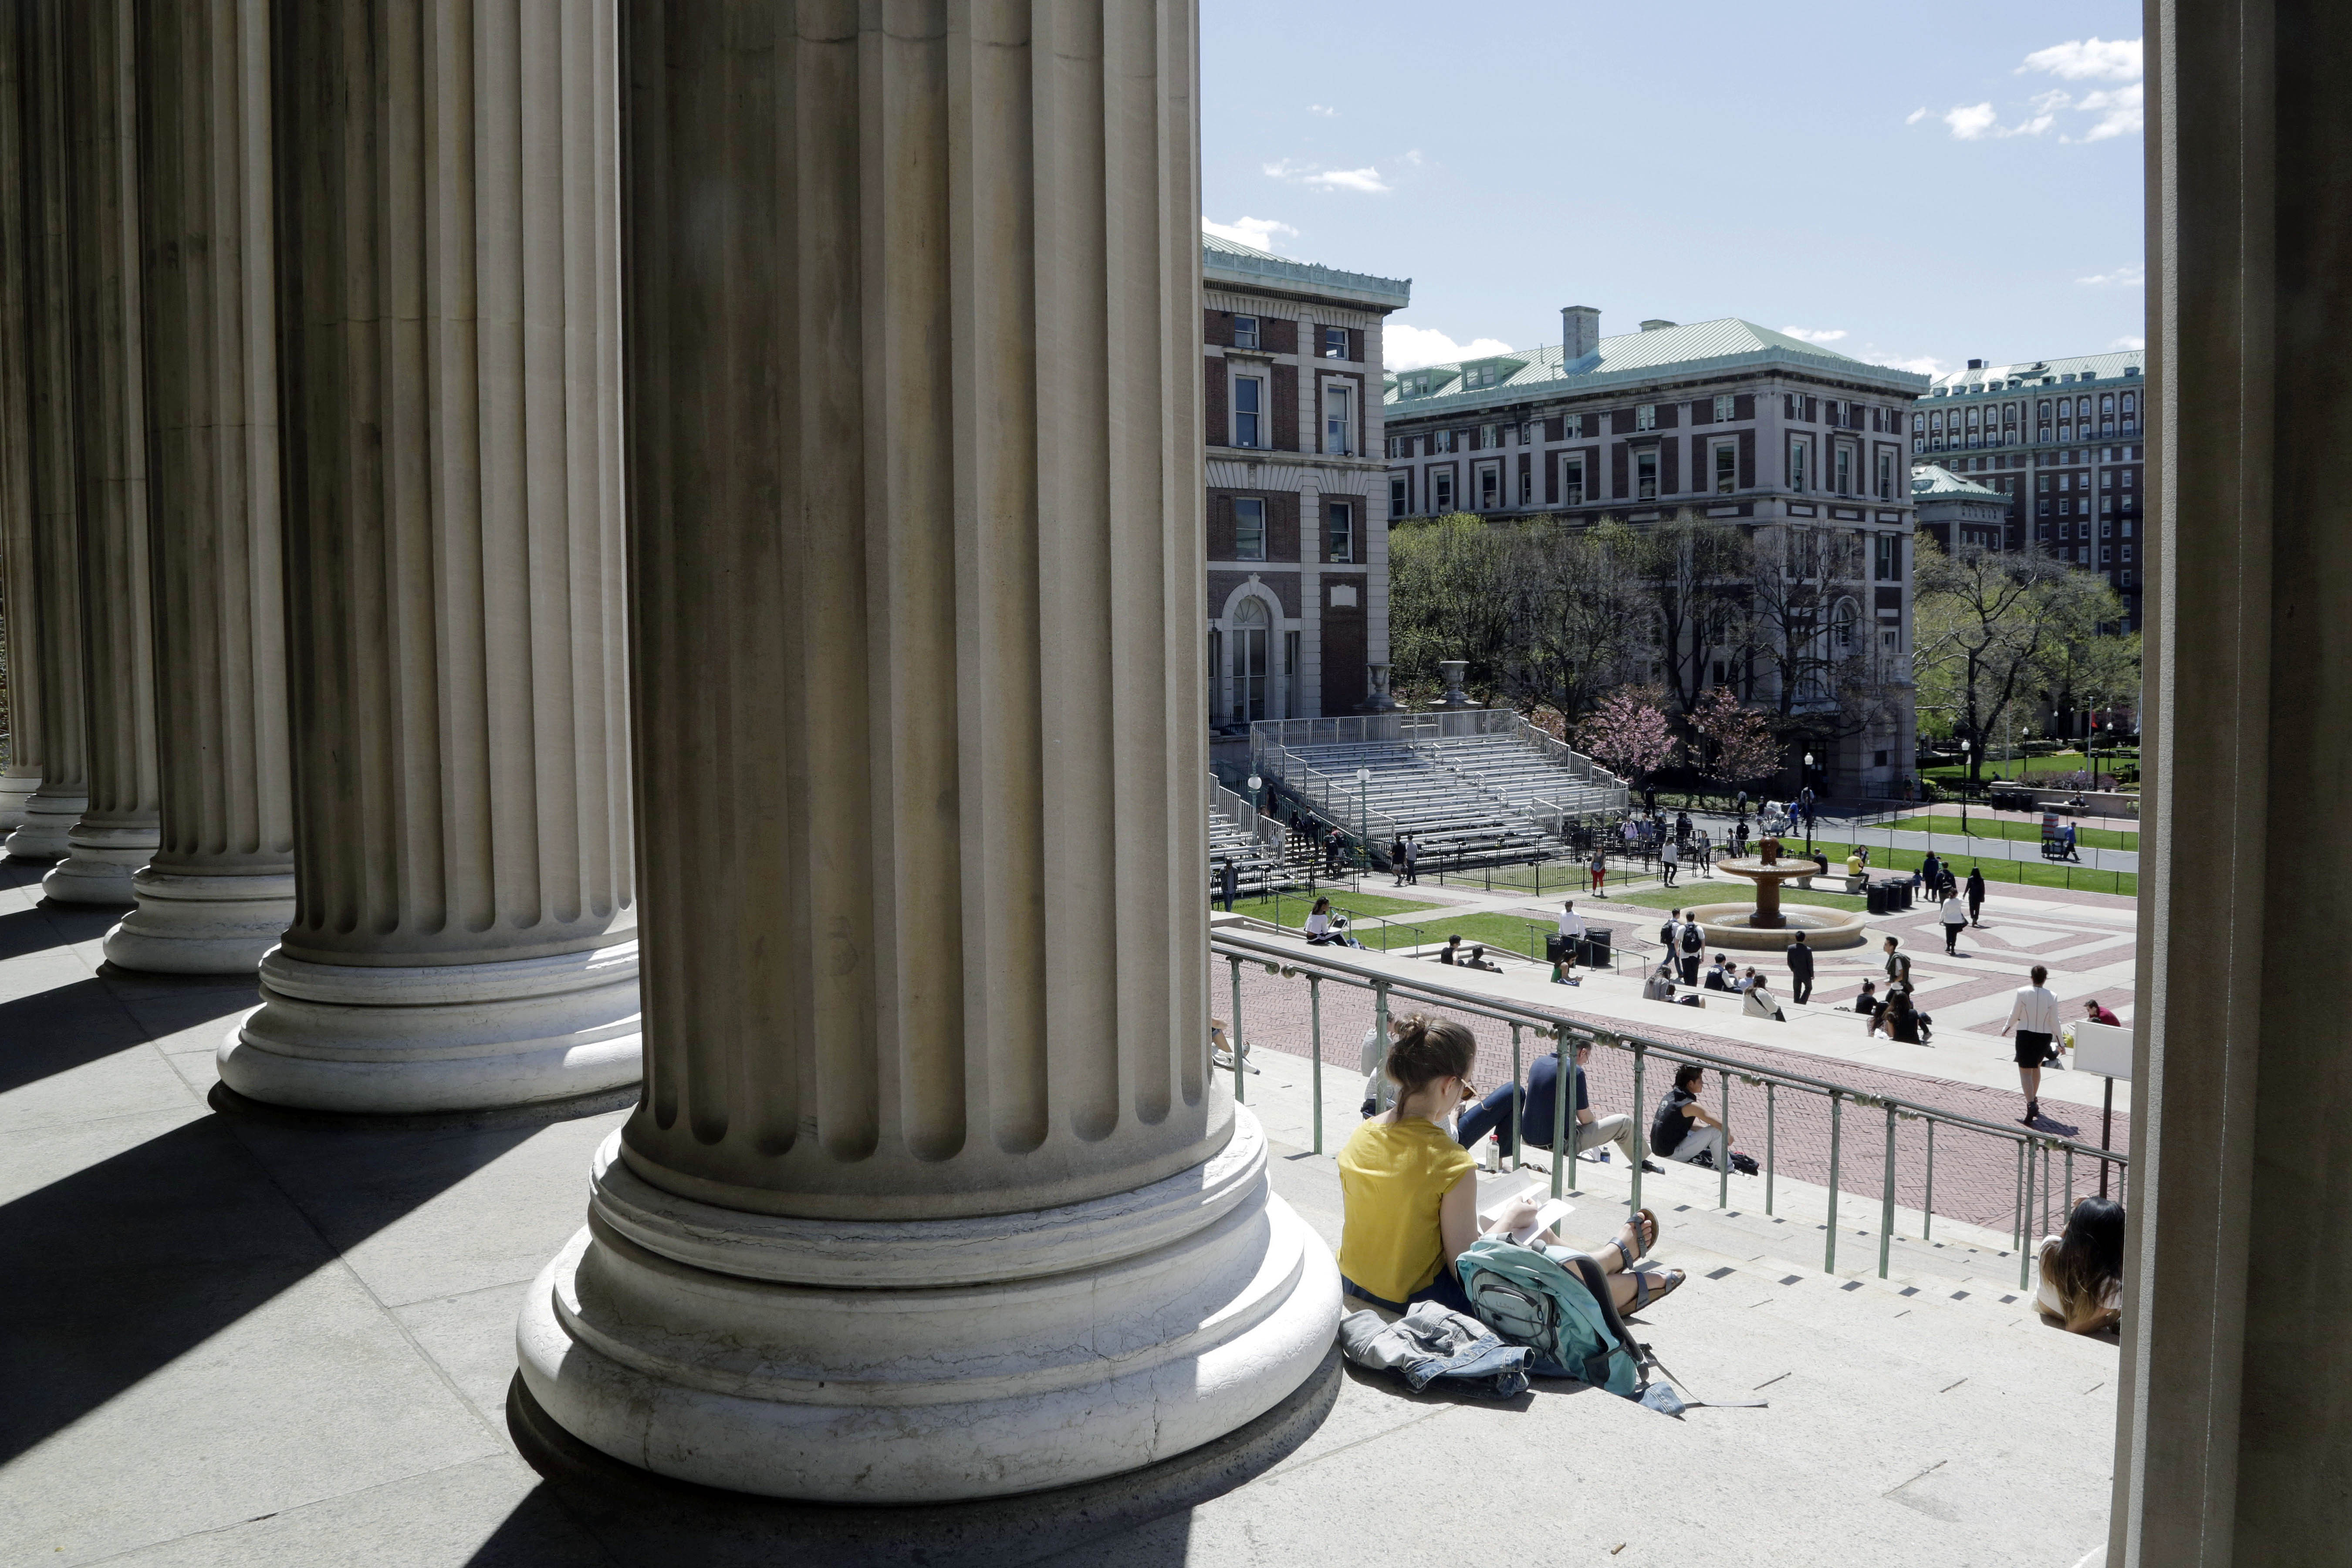 Students at Columbia University in New York, April 29, 2015.